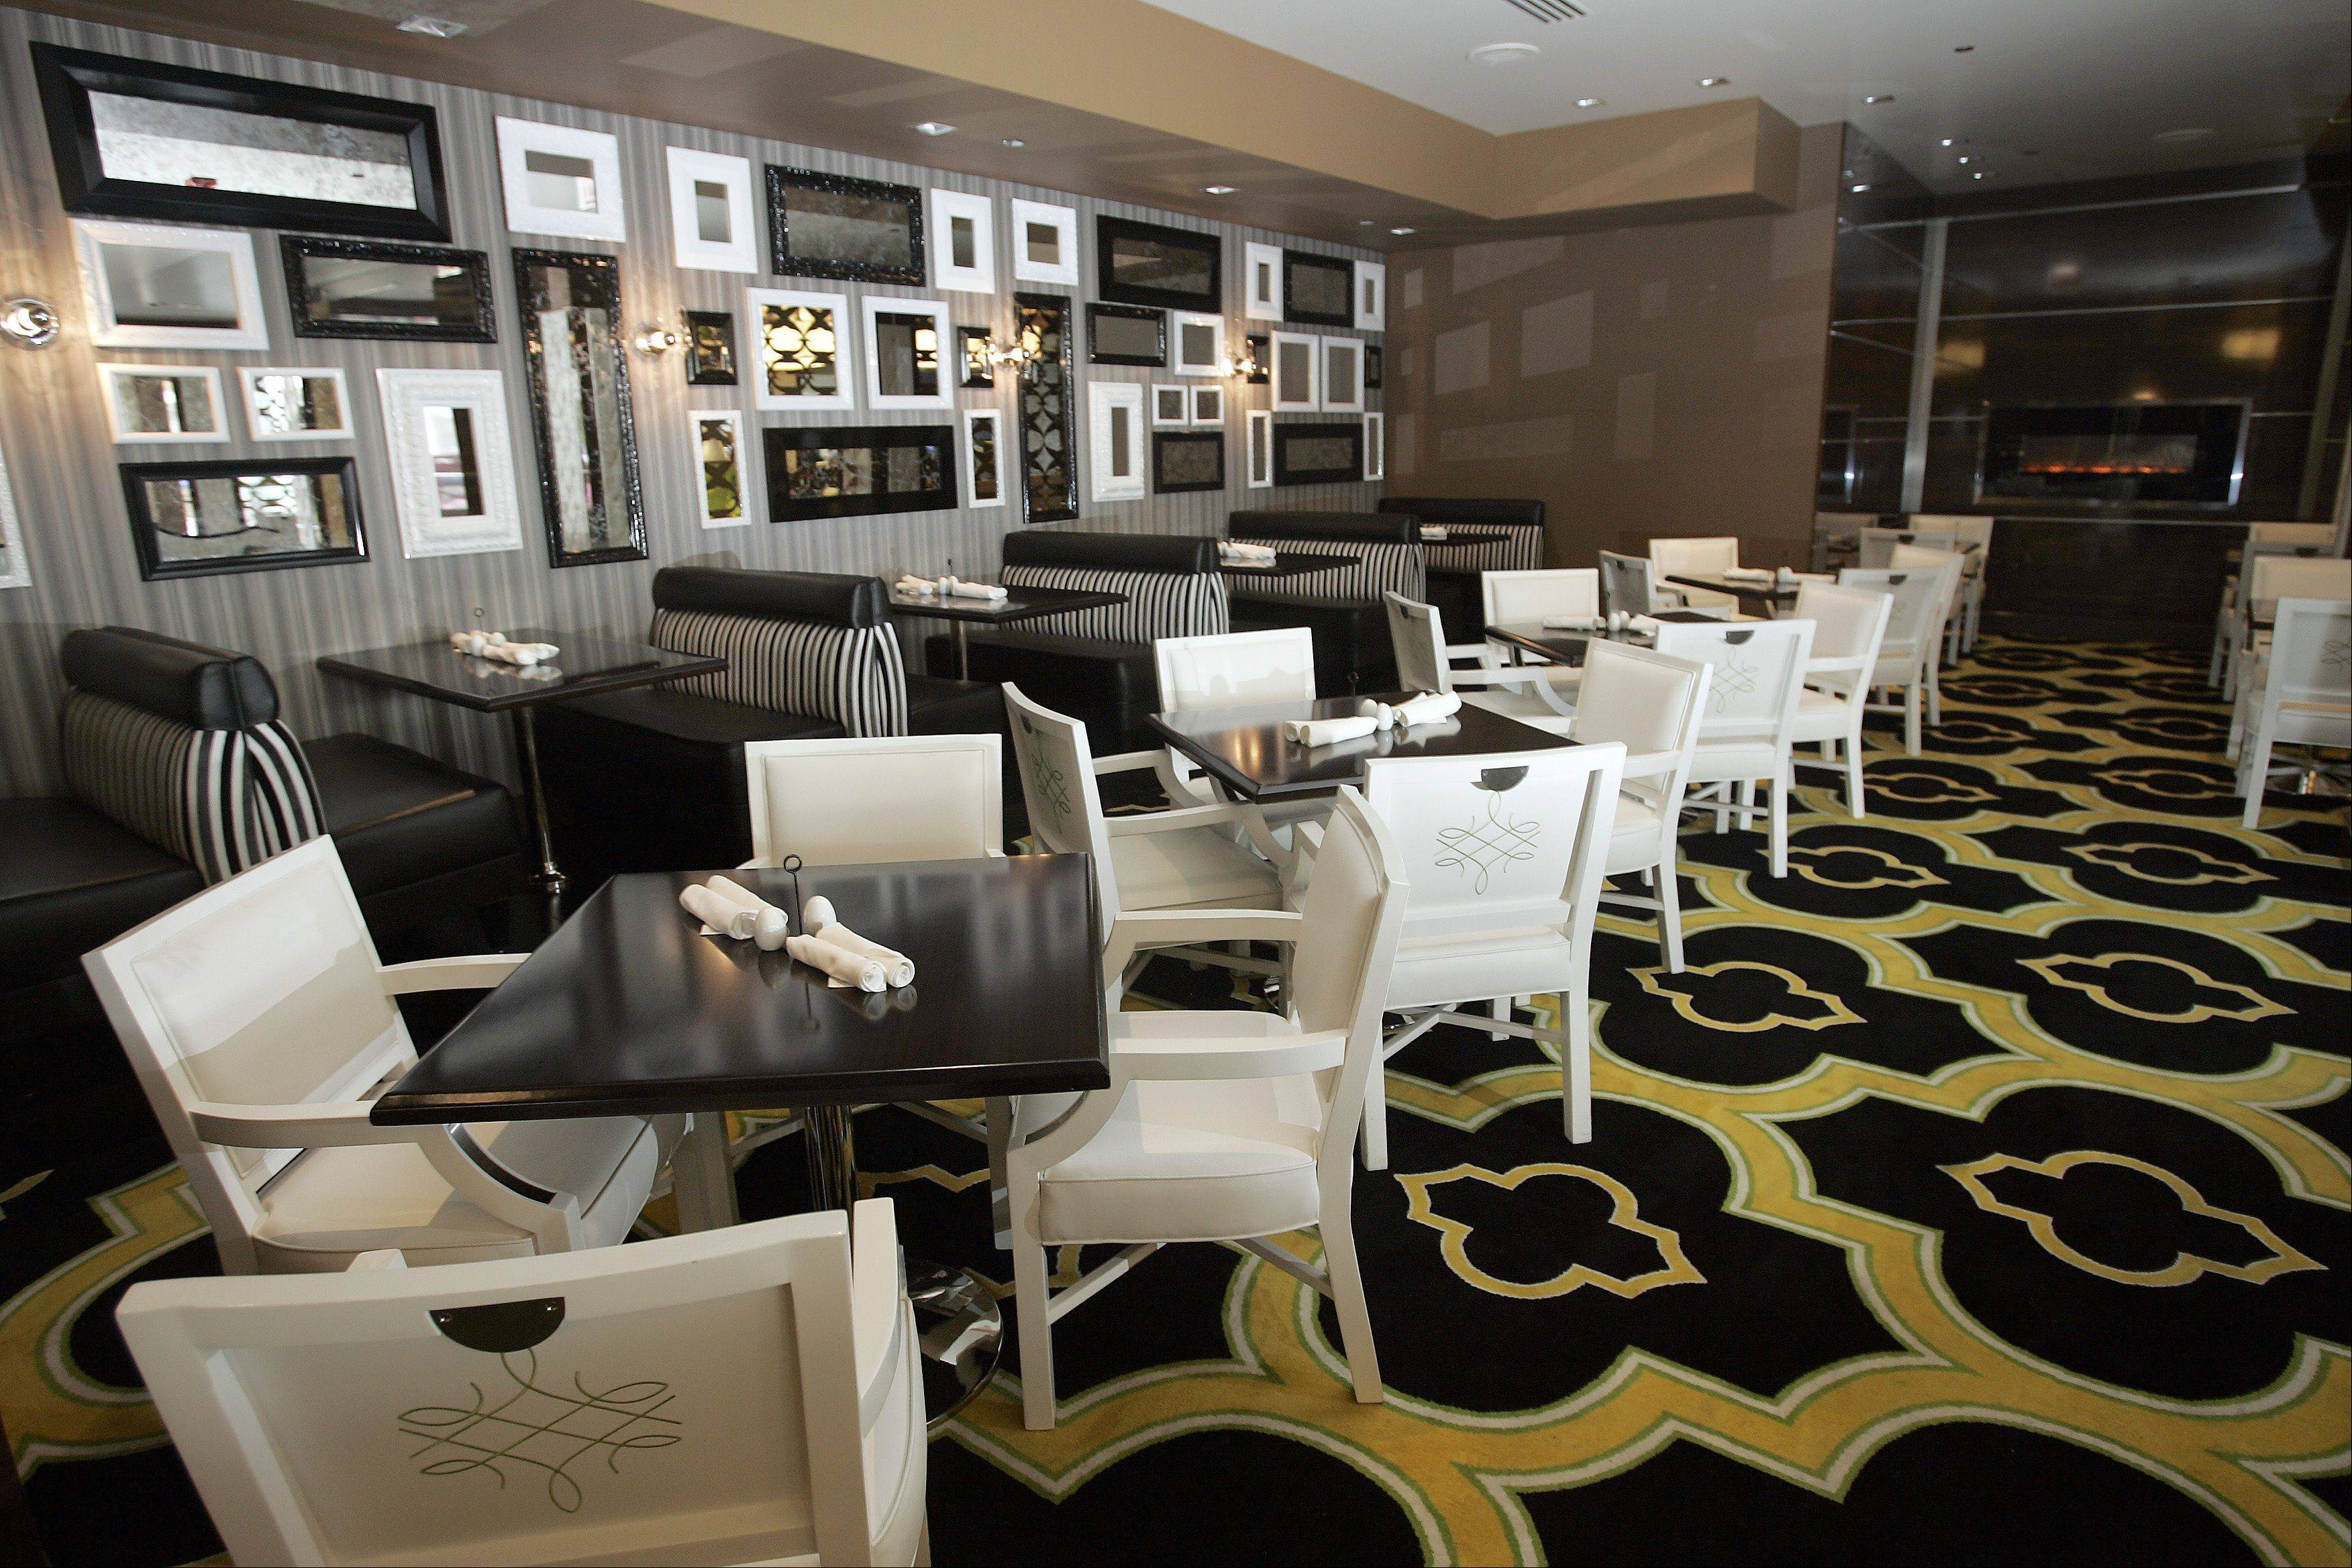 The dining room at Indulge Buffet offers seating for 300 people.